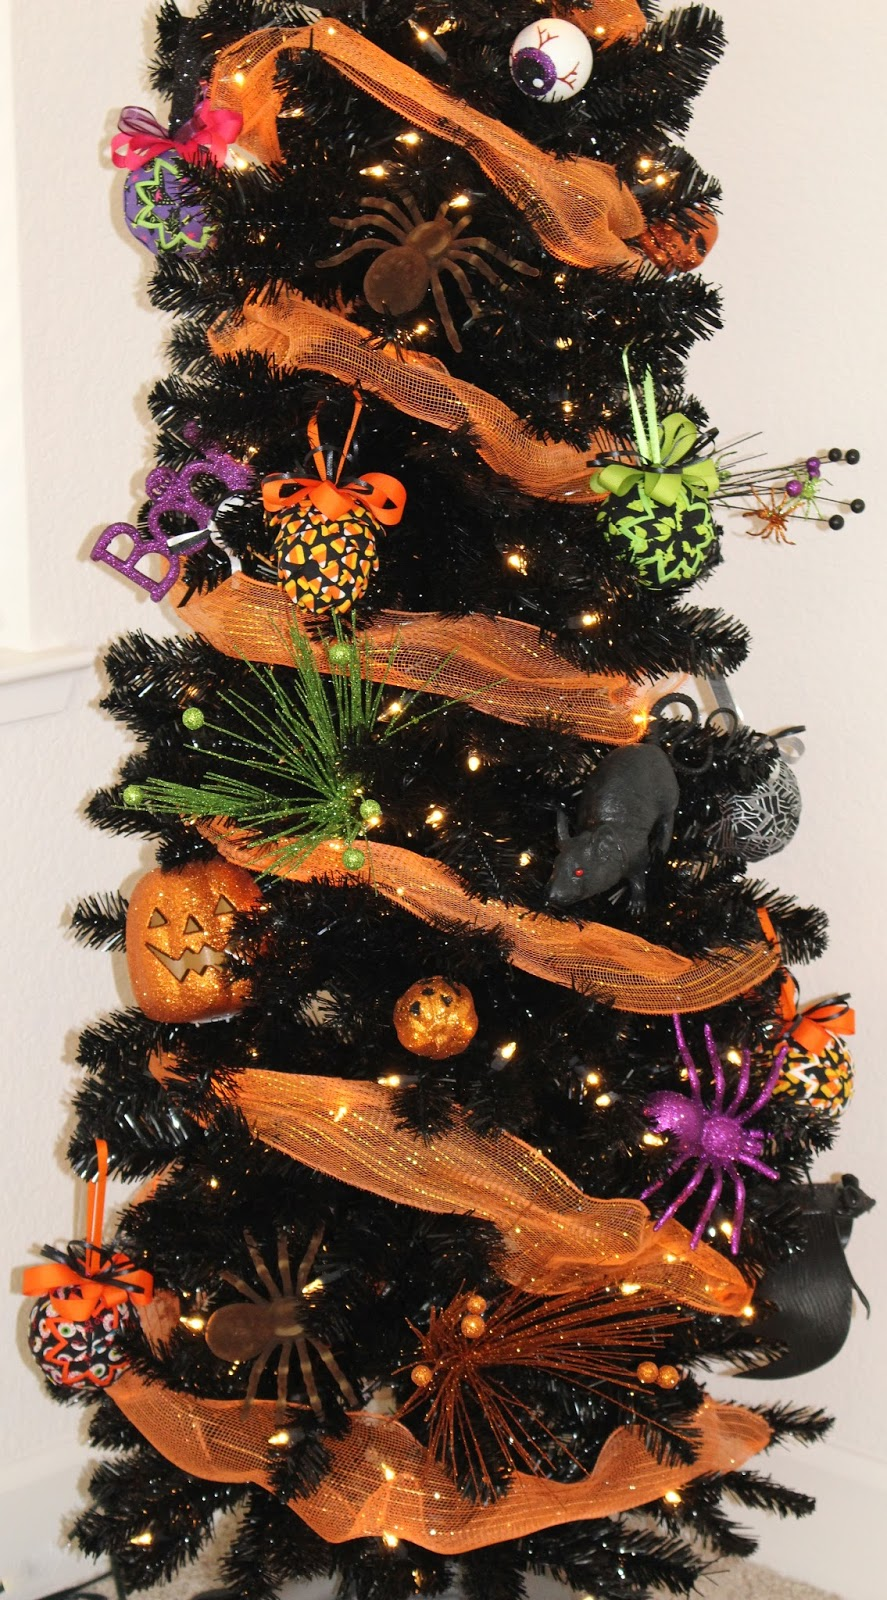 Halloween tree ornaments - I M Really Happy With How The Tree Turned Out The People Who Have Seen It So Far Love It Which Makes My Heart Happy Now Once Halloween Is Over The Tree